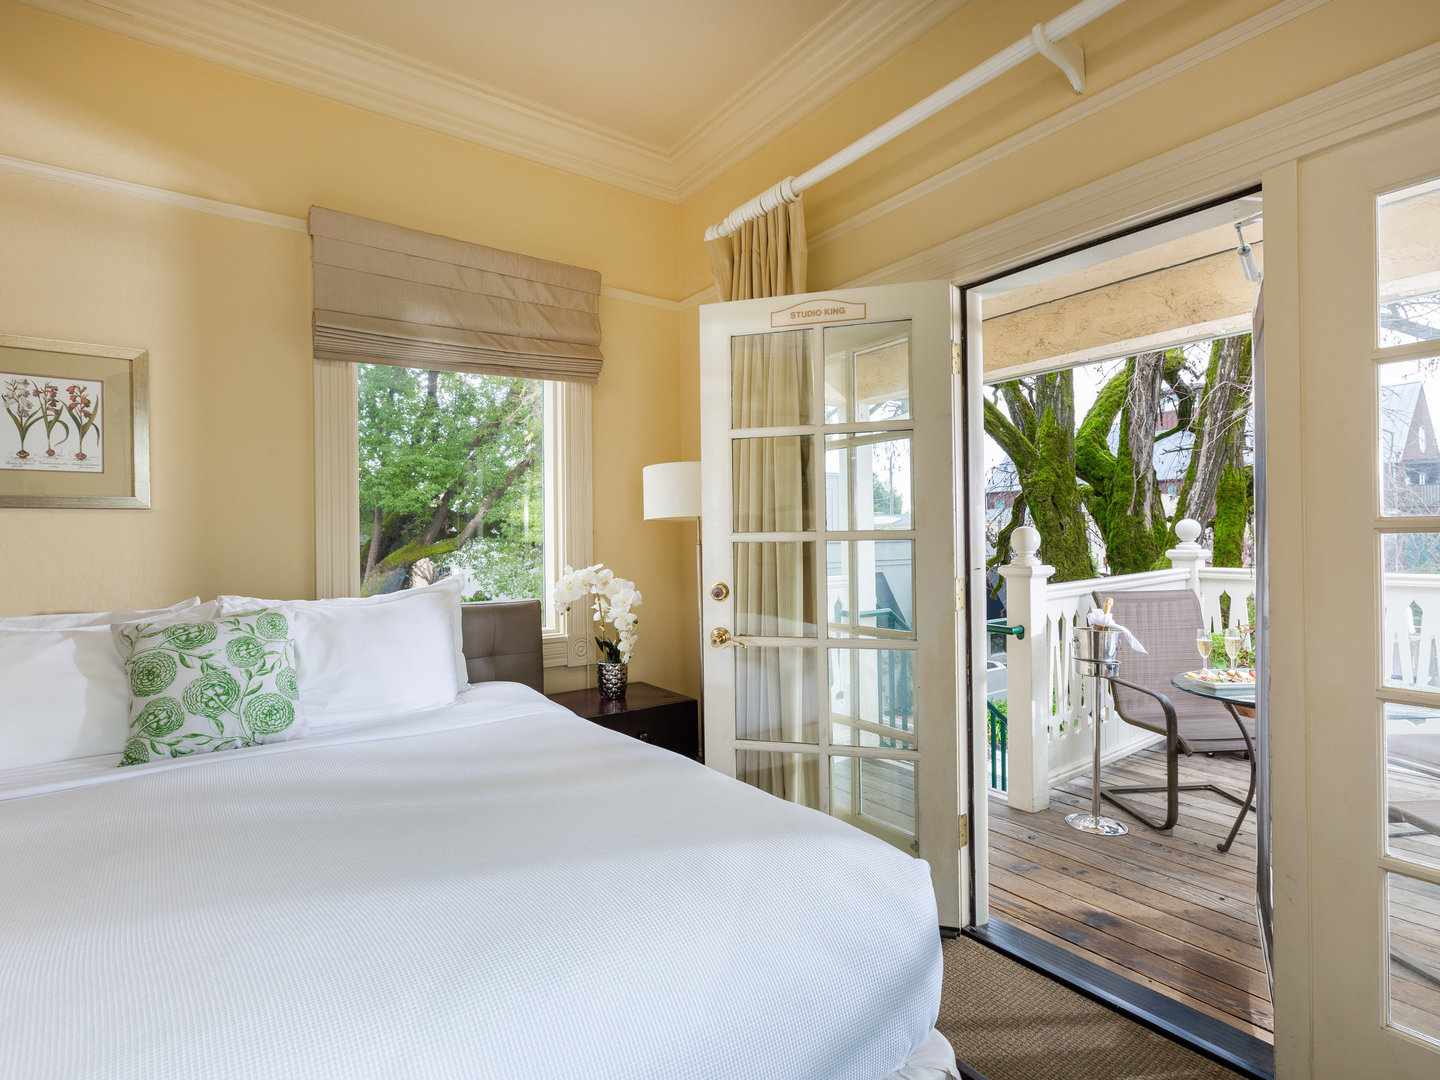 A large white bed in a bedroom next to a window at Healdsburg Inn, A Four Sisters Inn.